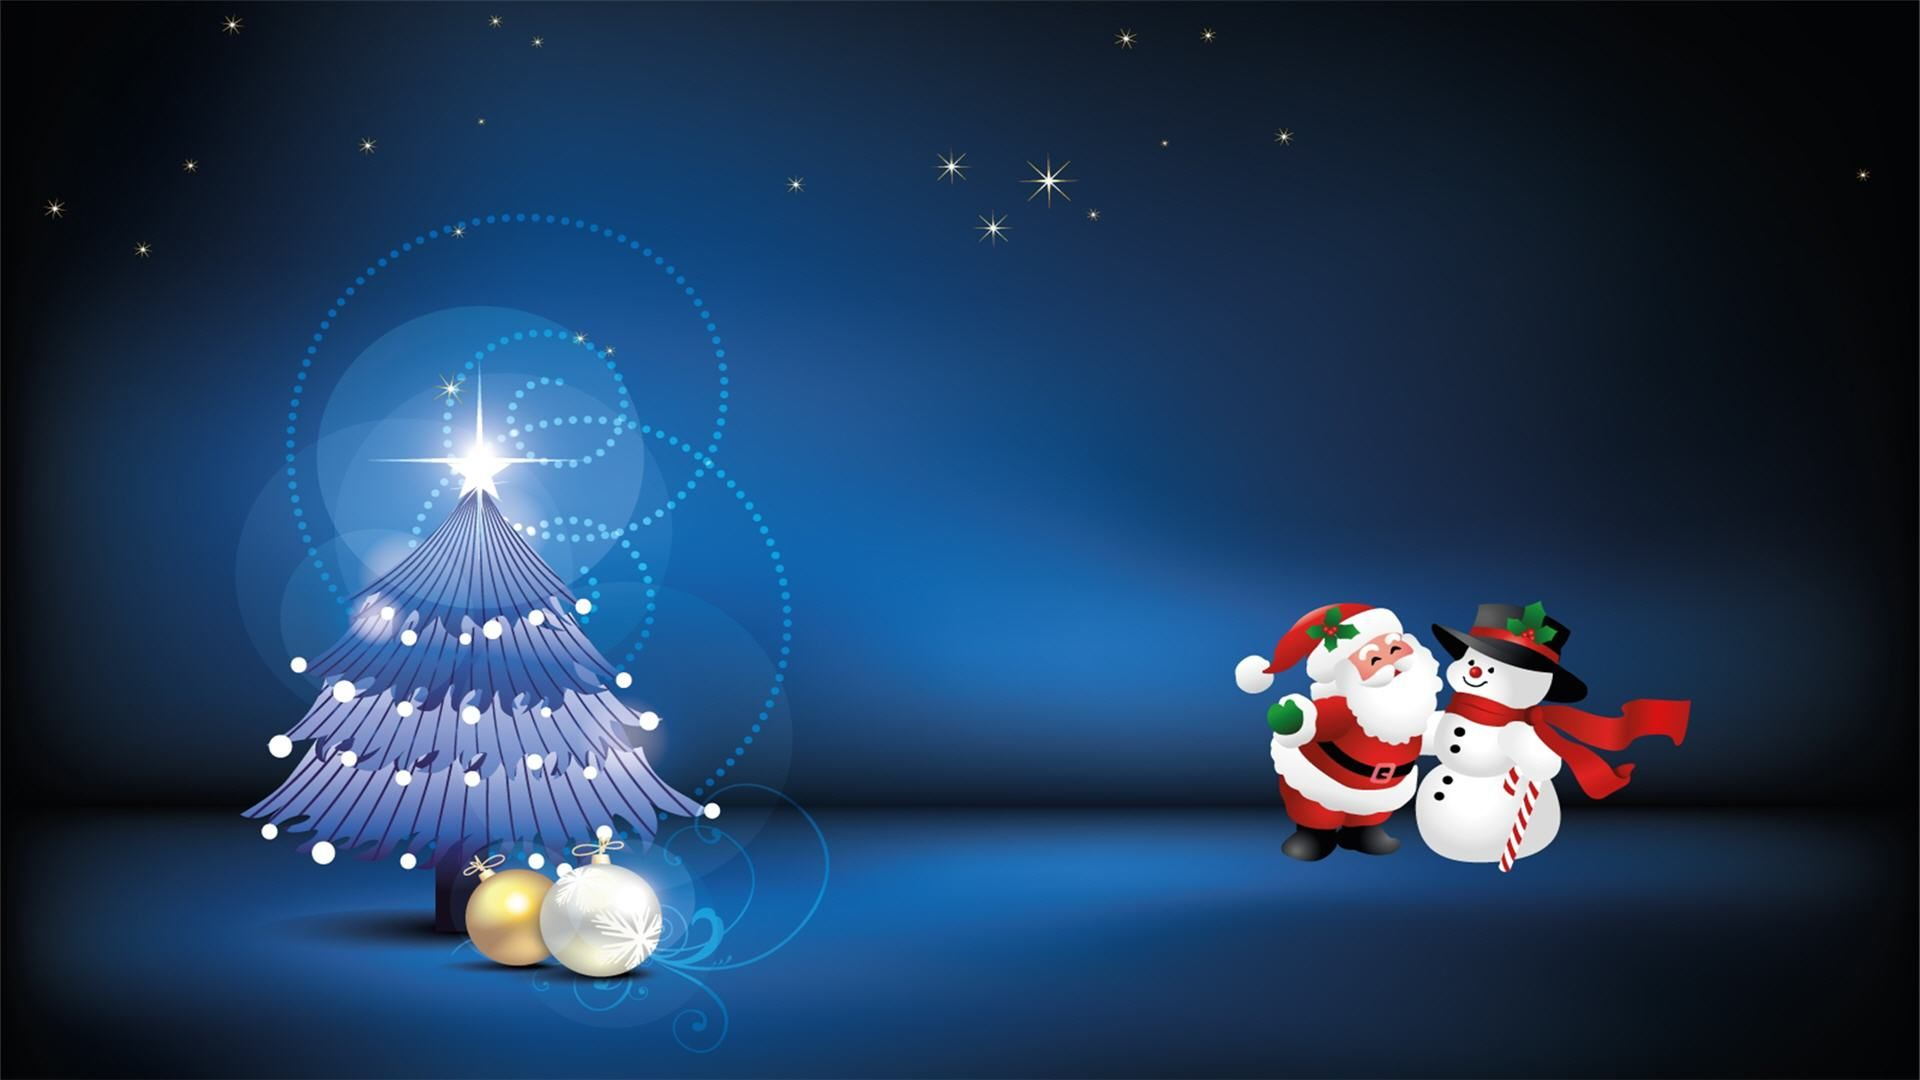 Christmas Backgrounds collection of wallpapers available